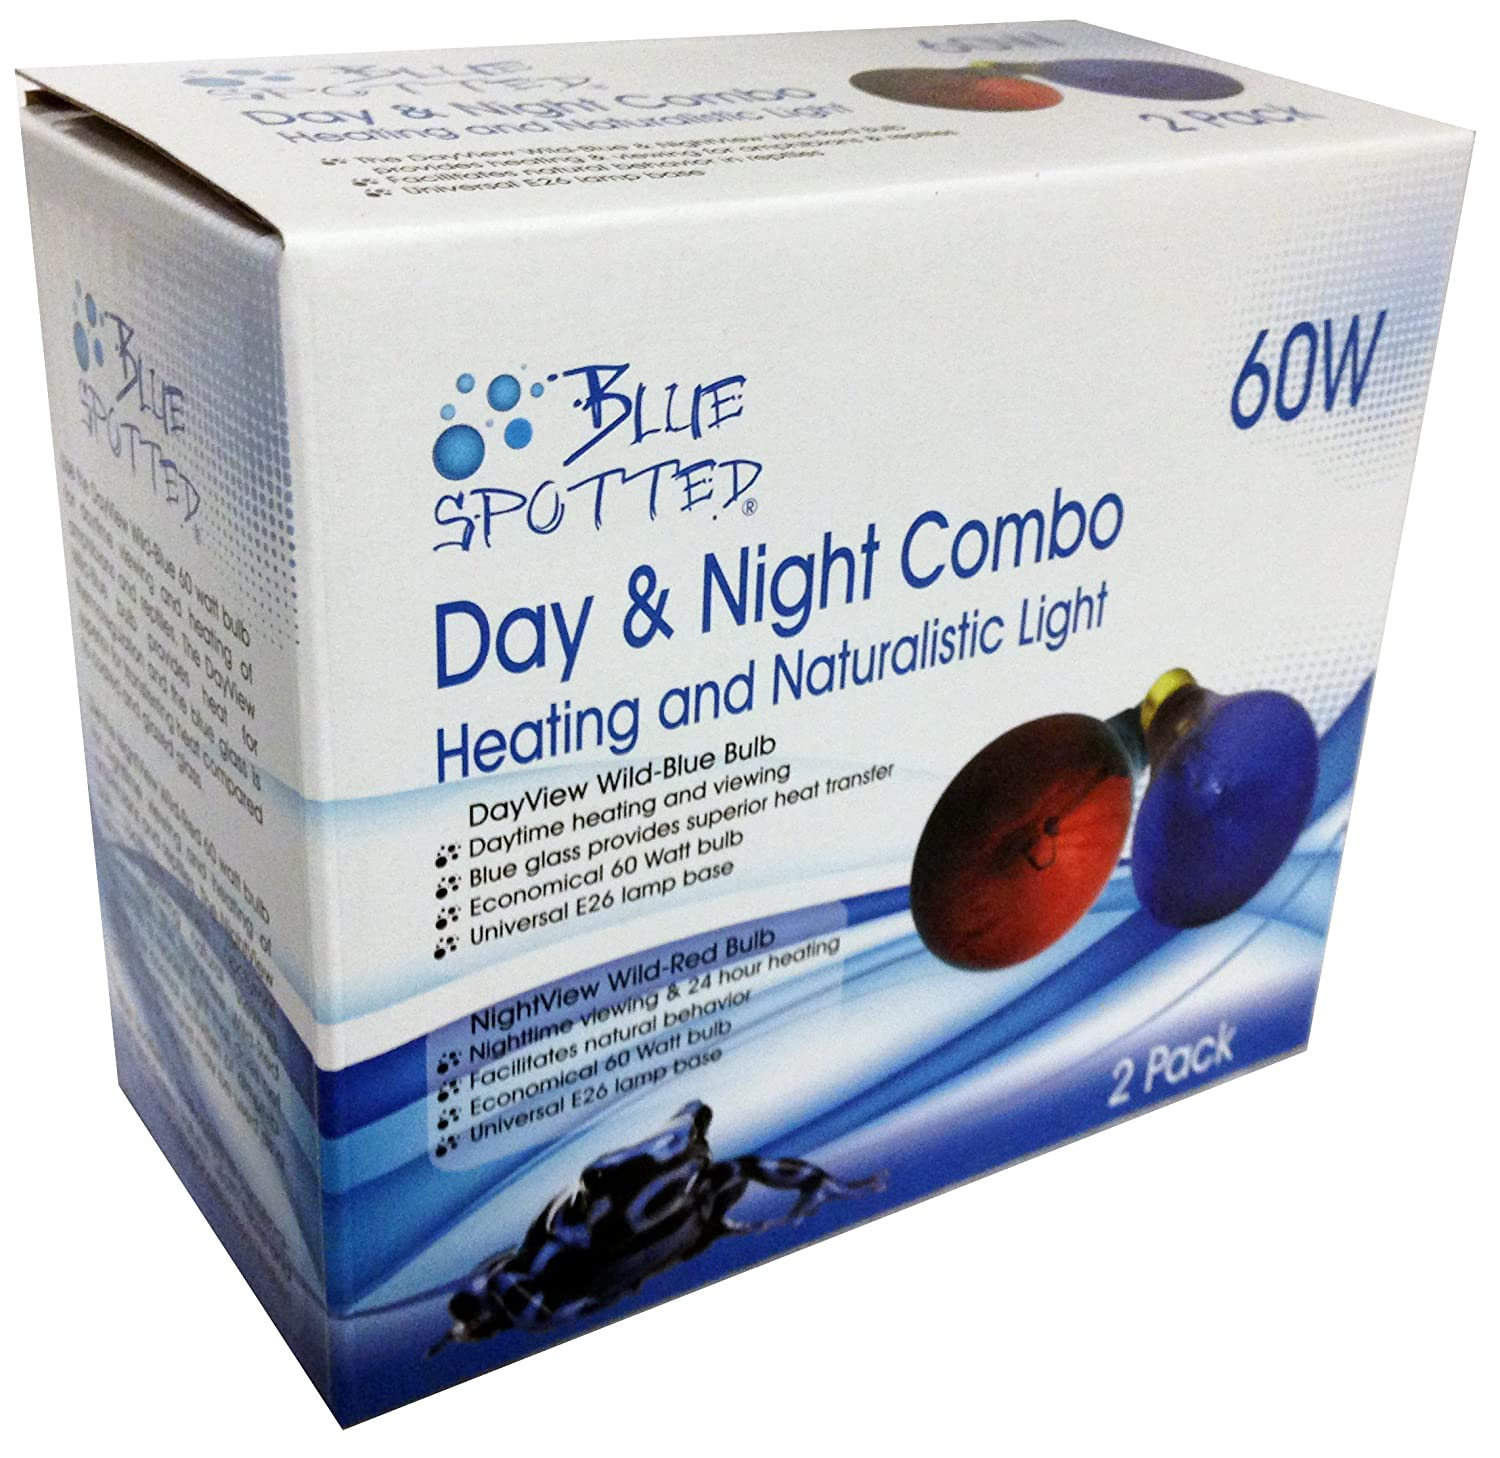 bluee Spotted Day & Night 60 Watt Combo Pack for Terrariums & Viewing and Heating of Your Pet Reptiles and Amphibians